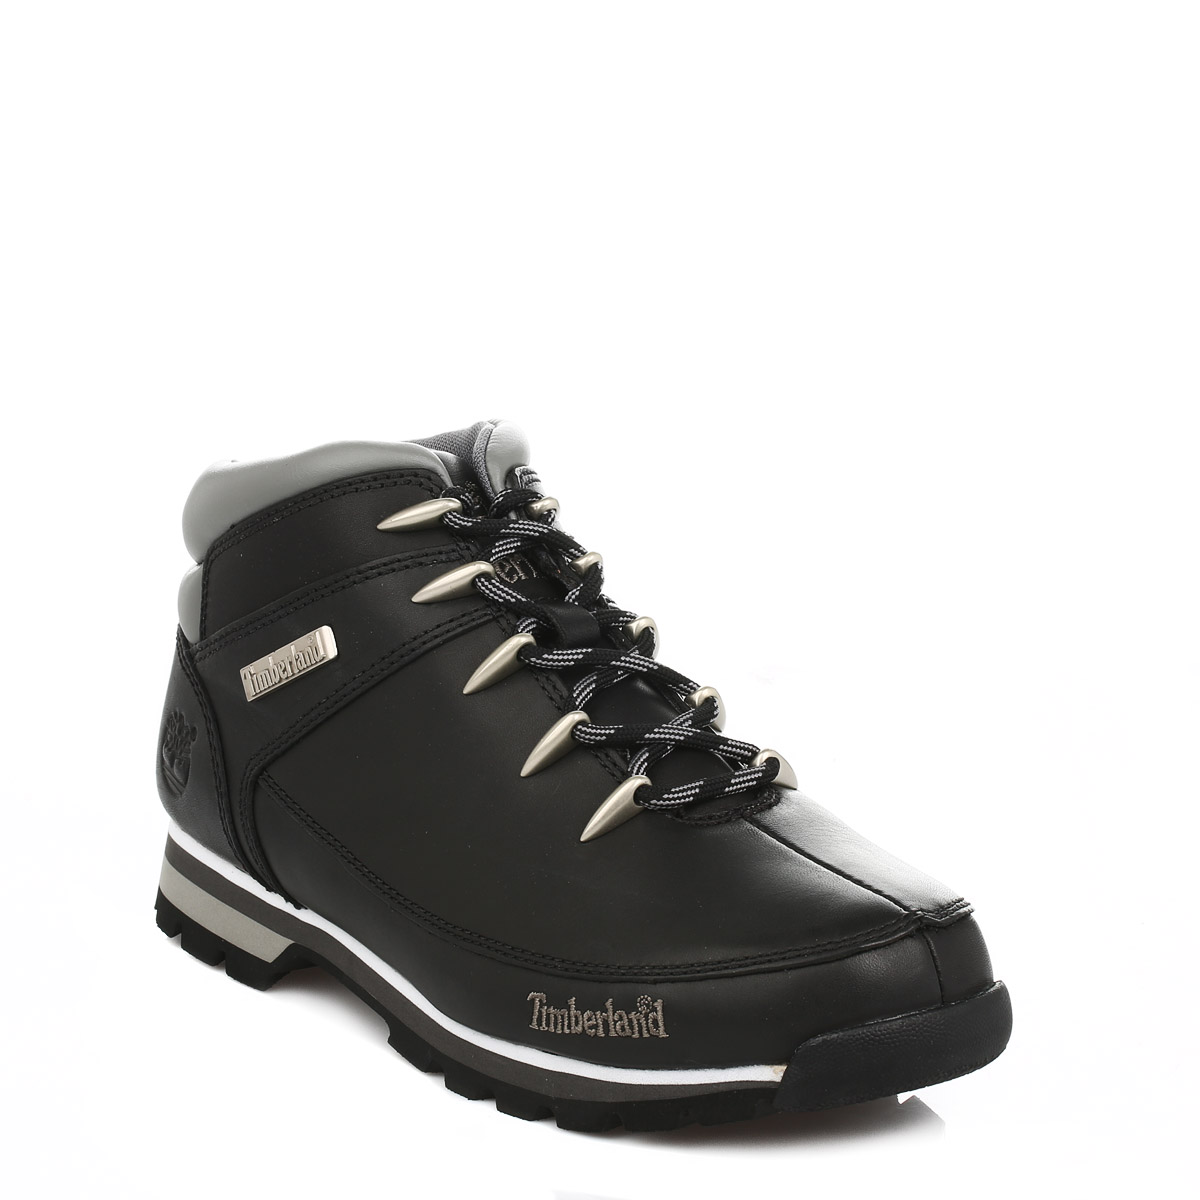 Timberland-Mens-Euro-Sprint-Hiker-Boots-Black-or-